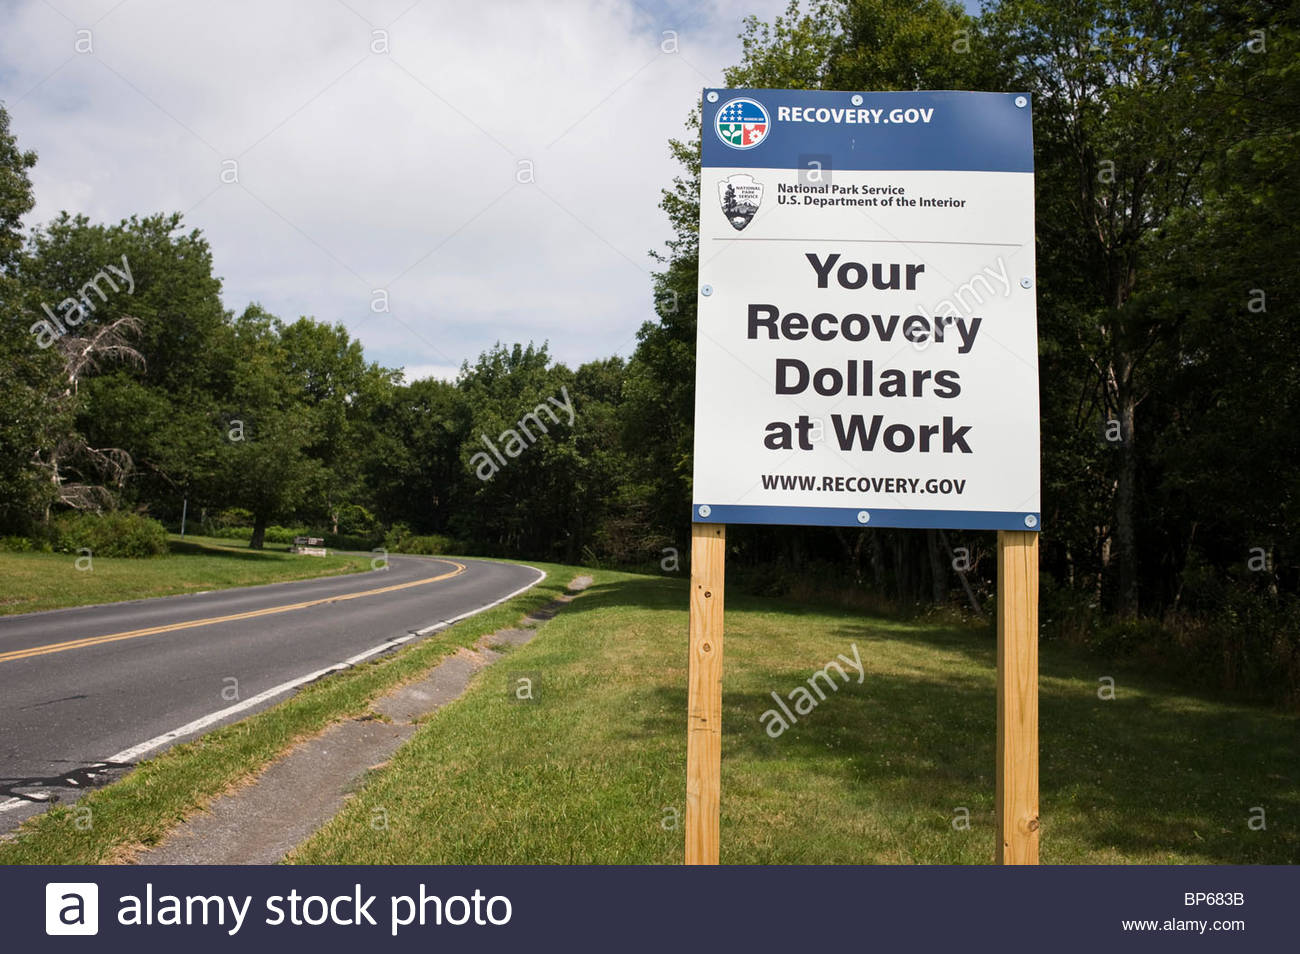 Government sign promoting US Federal Government economic recovery programme in the Shenandoah National Park, Virginia. - Stock Image